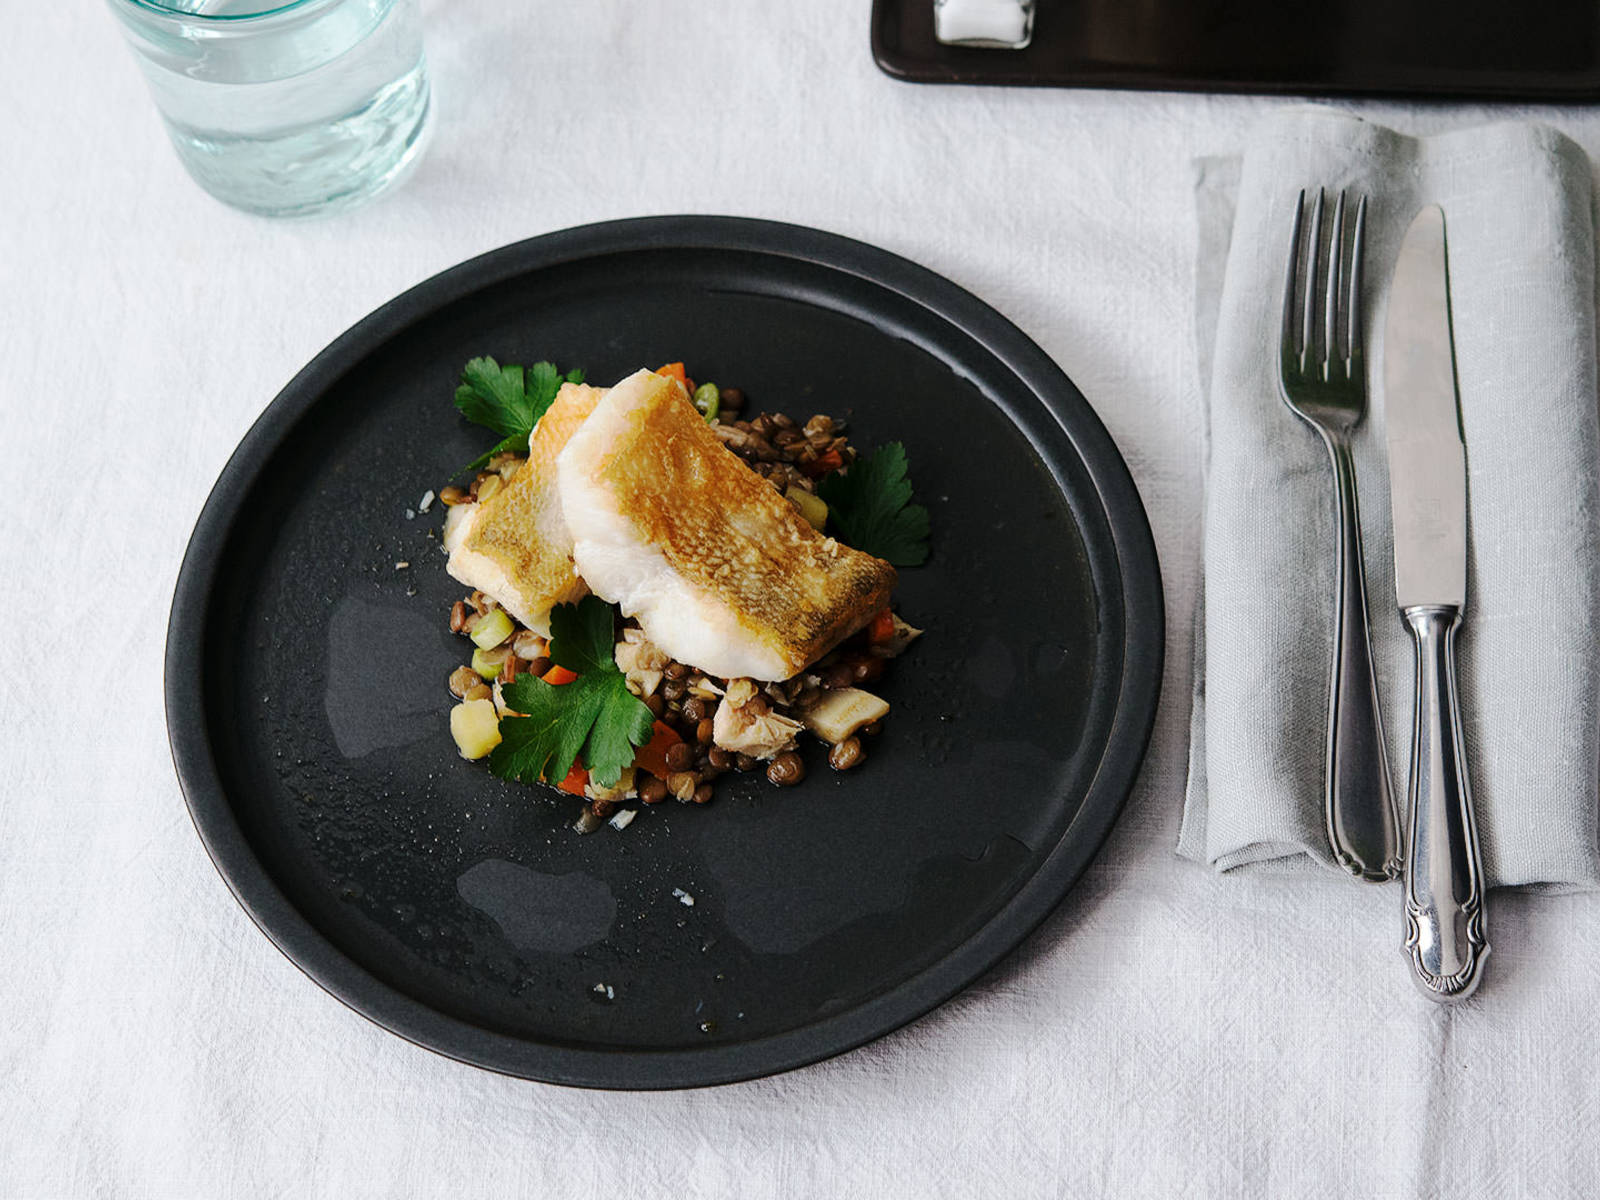 Pan-fried pike perch over lentil salad